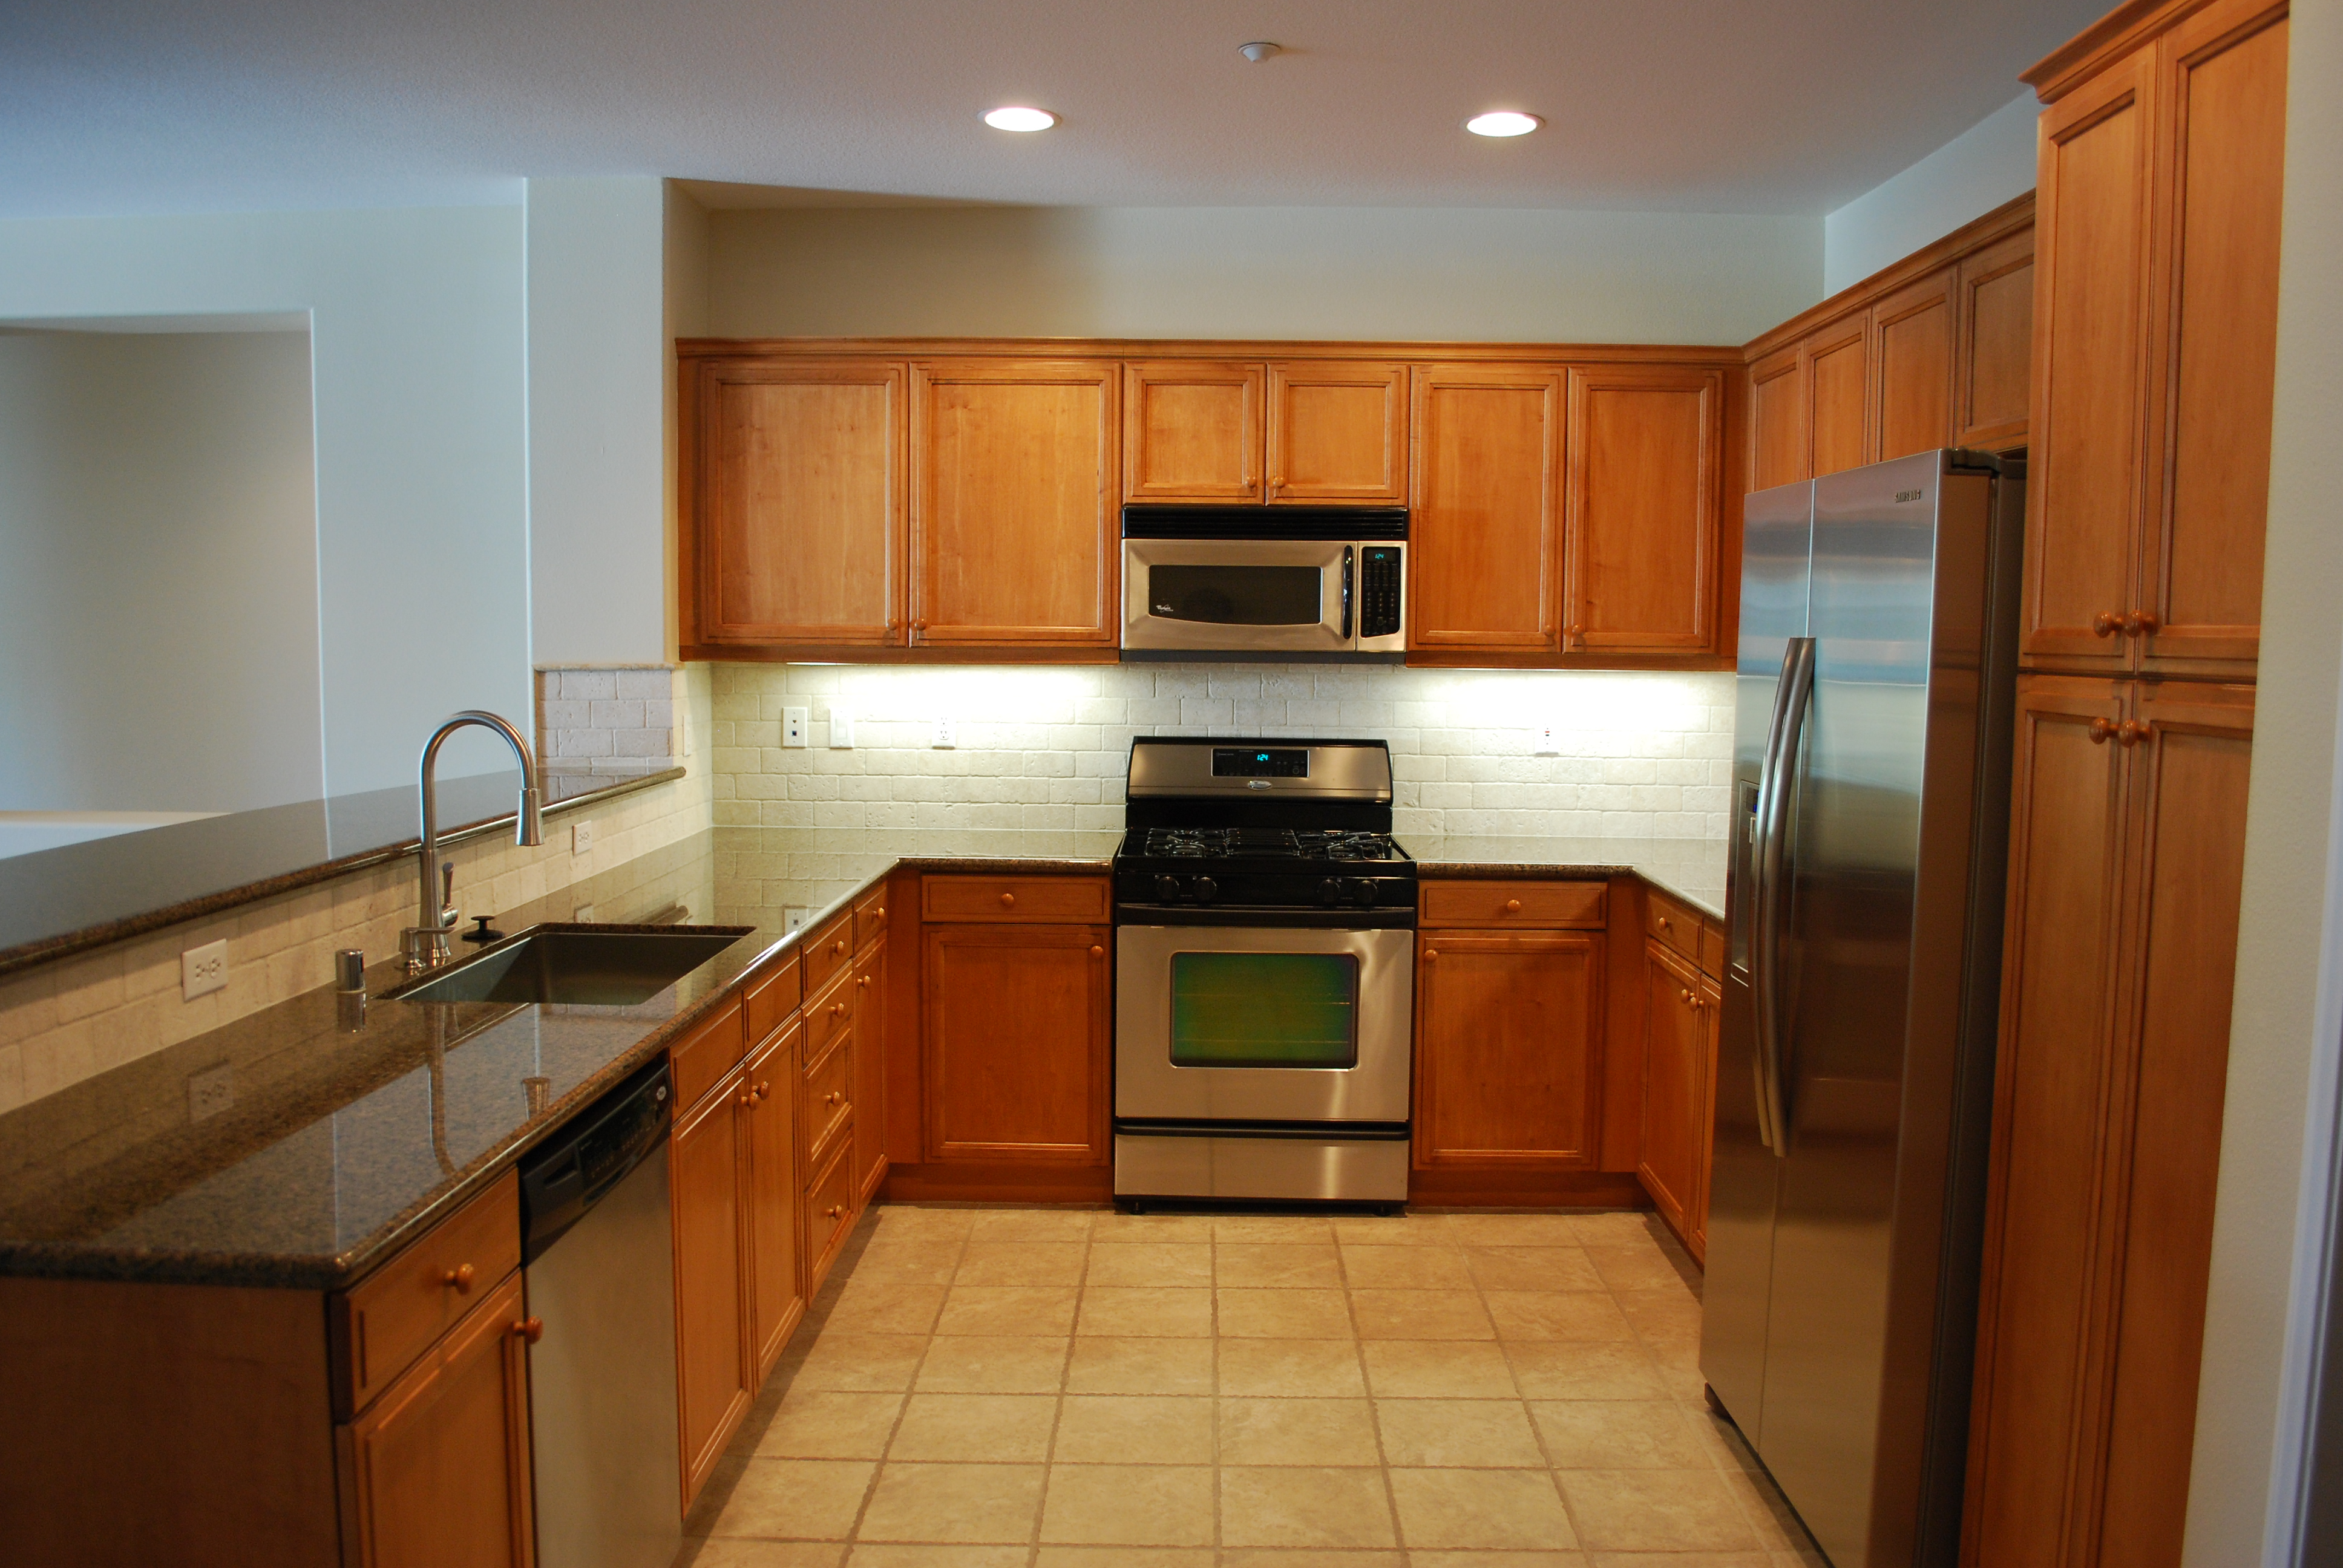 This Project Was Counter Top Upgrade From The Original White Tile That Was  Around 5 Years Old To A Full Custom Tropical Brown Granite Slab Counter Top.